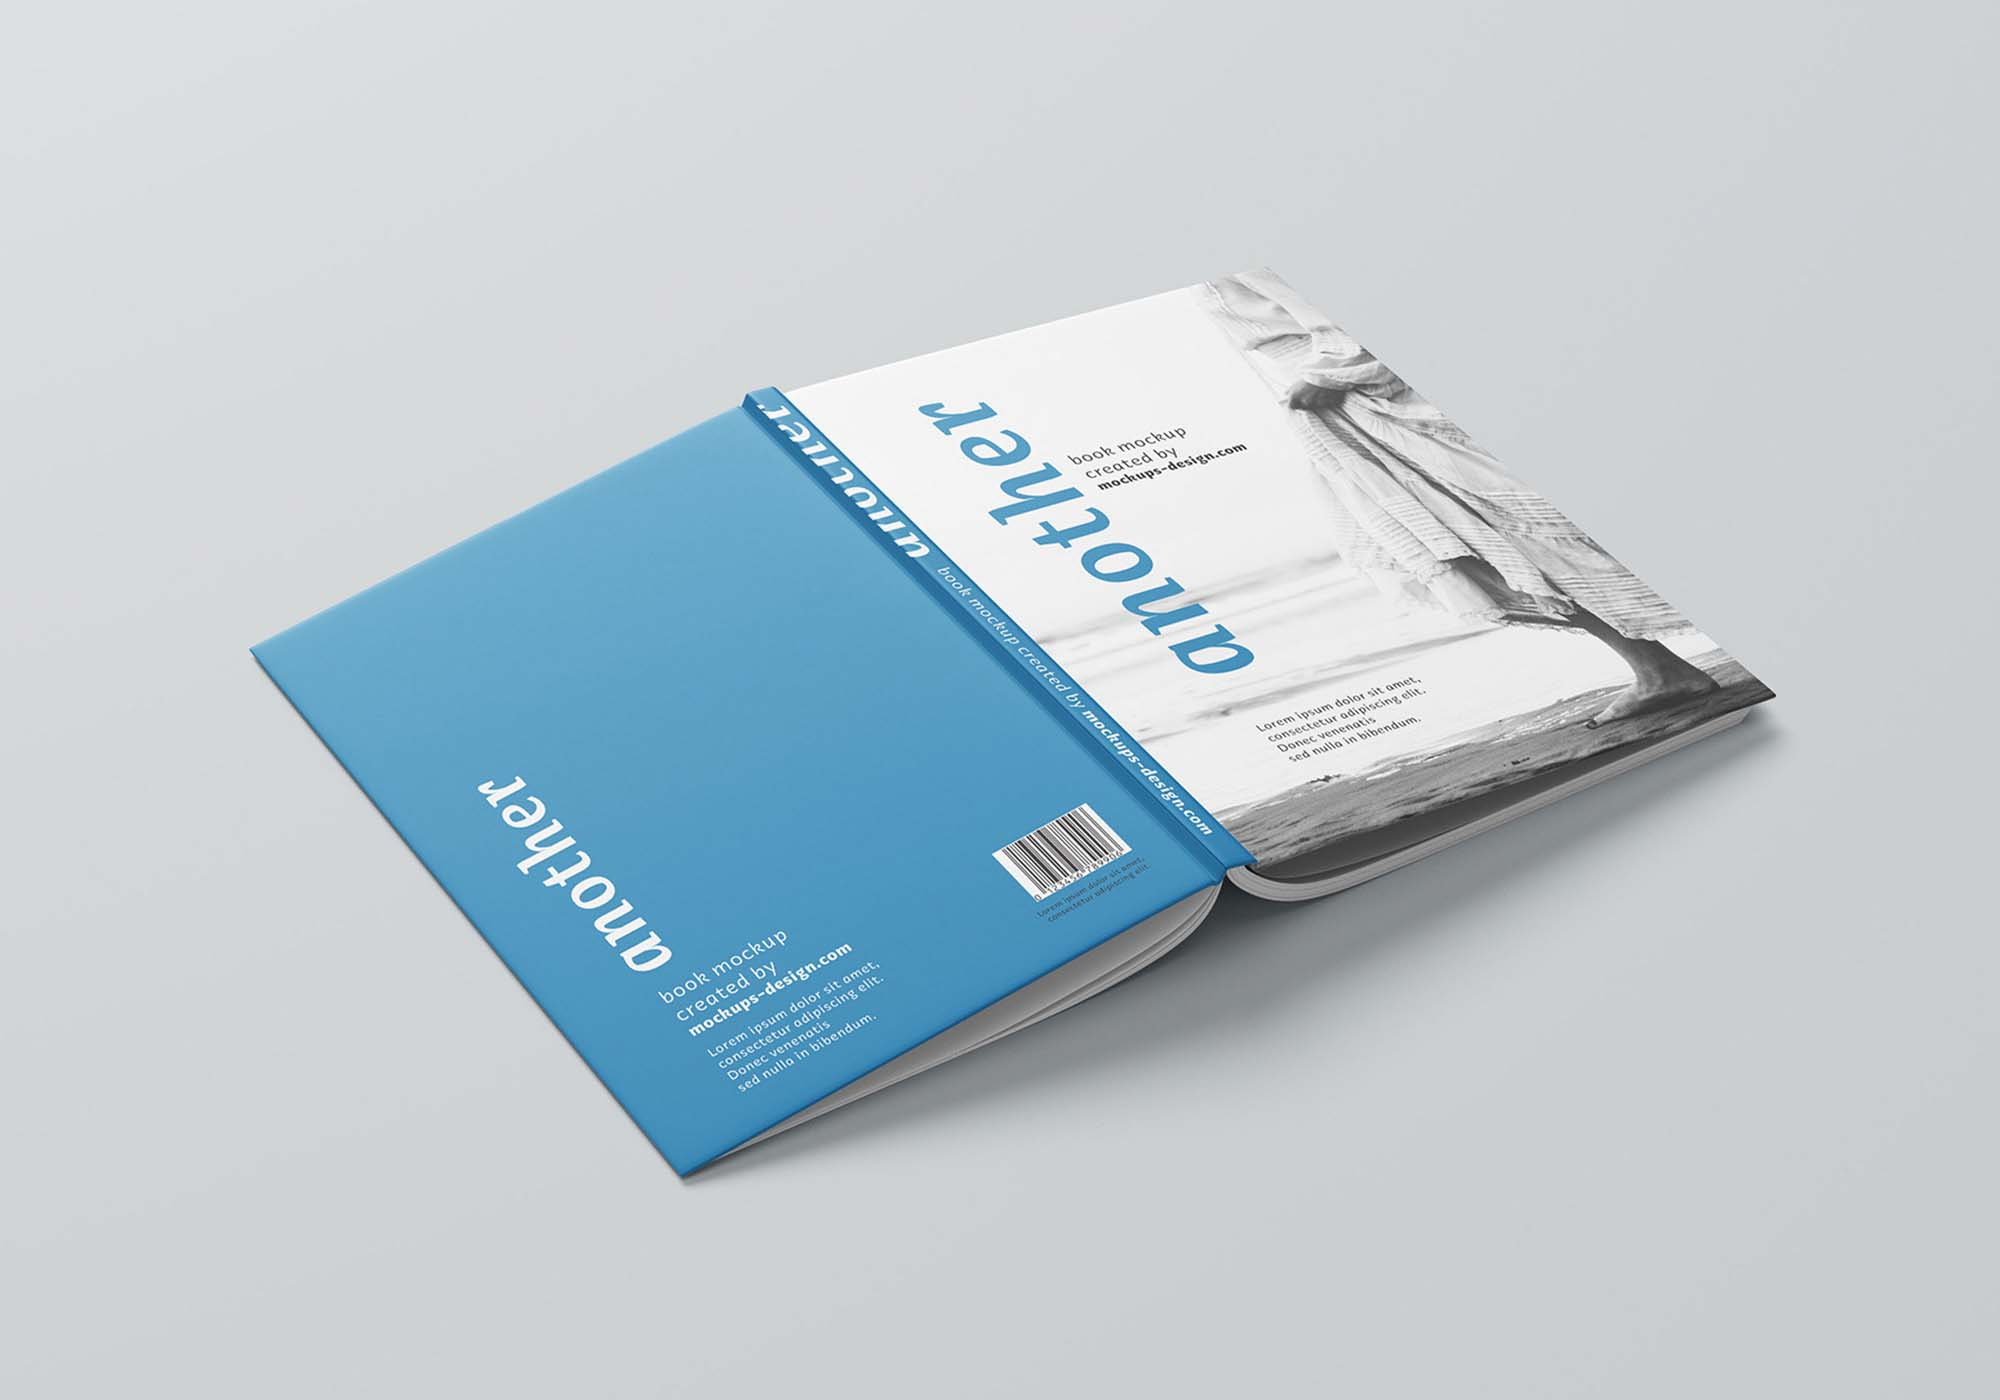 Thin A4 Hardcover Book Mockup